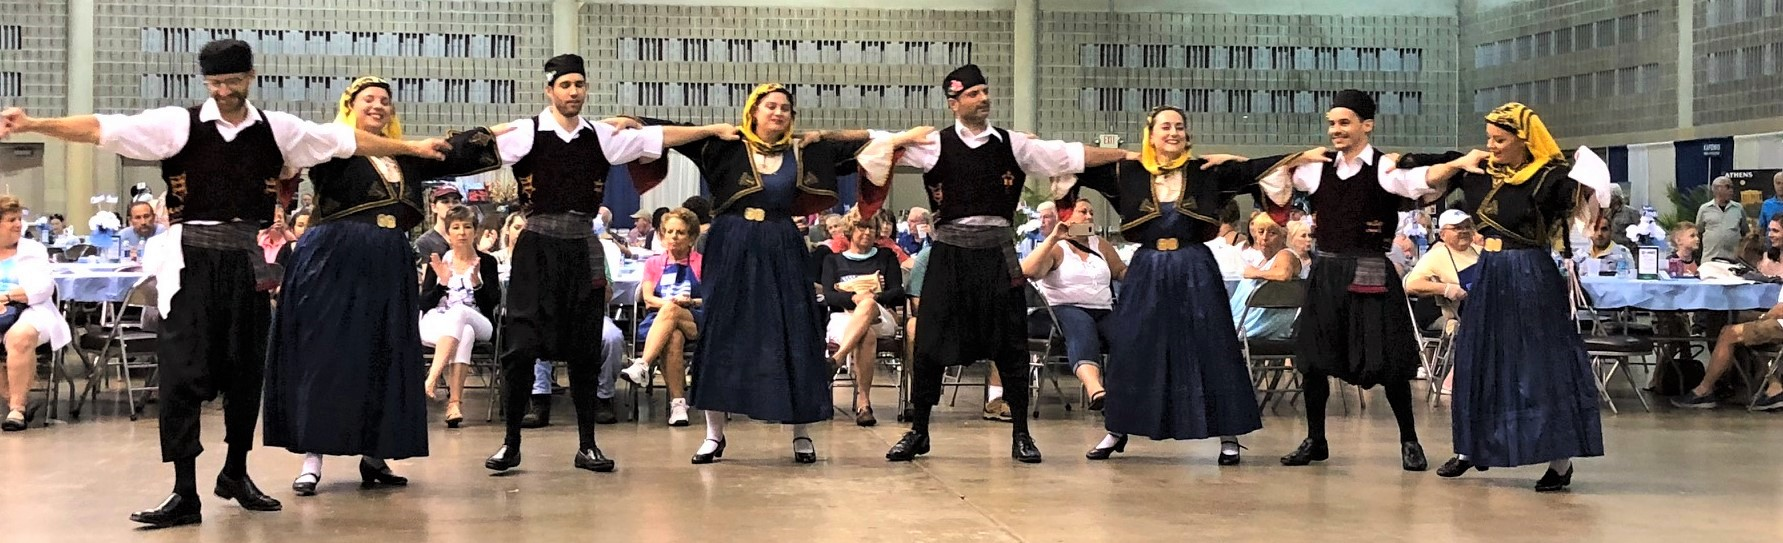 30th Annual Greek Festival Set For Resort This Weekend